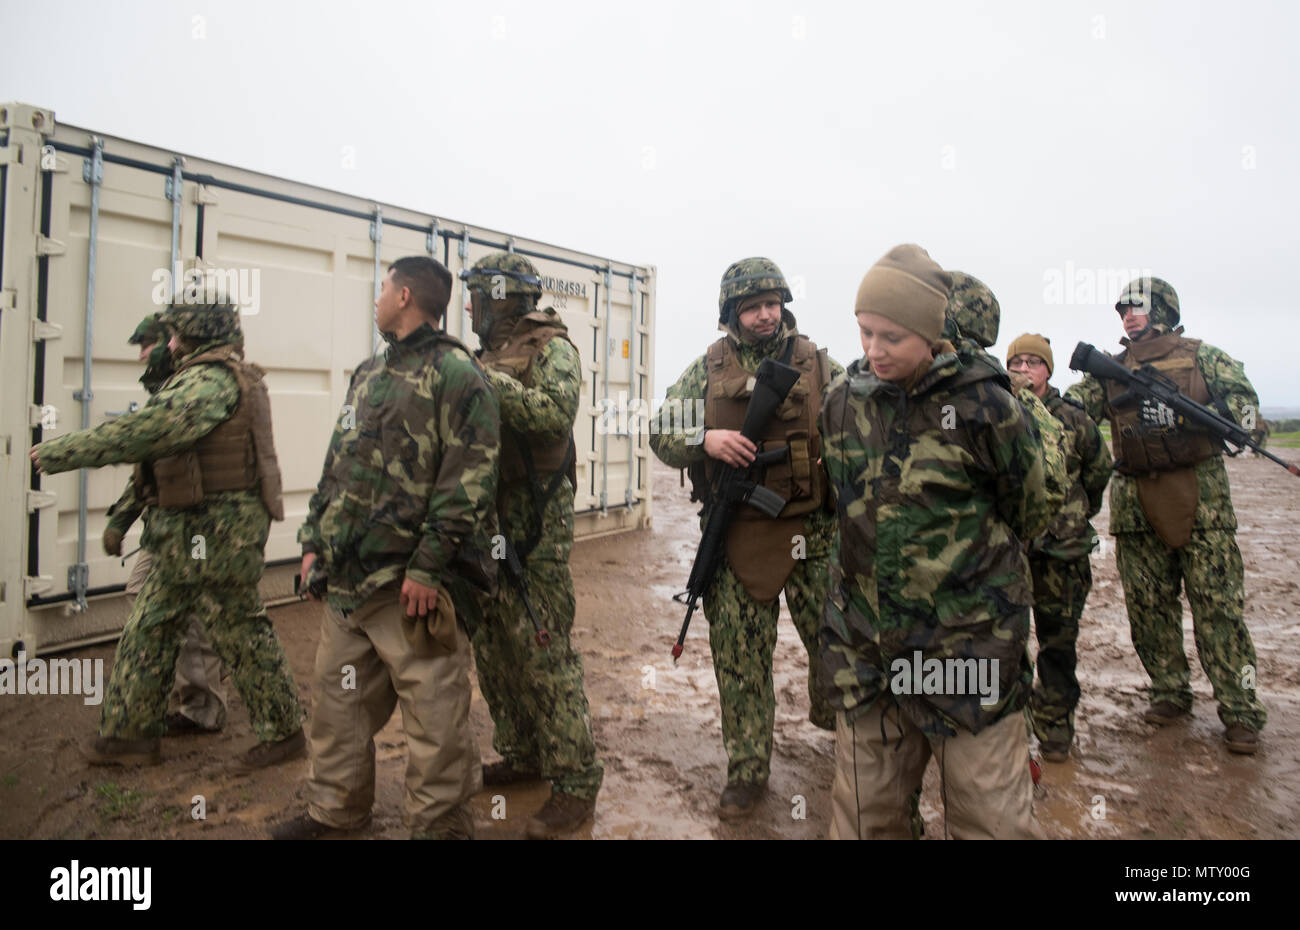 CAMP PENDLETON, Calif. (Jan. 19, 2017) - Sailors attached to Amphibious Construction Battalion 1's force protection team apprehend red cell members during a simulated camp intrusion scenario for Field Training Exercise (FTX) 2017. FTX 2017 is a scenario-based exercise designed to train and test the battalion in Seabee Combat Warfare.  (U.S. Navy photo by Mass Communication Specialist 2nd Class Eric Chan/Released) - Stock Image